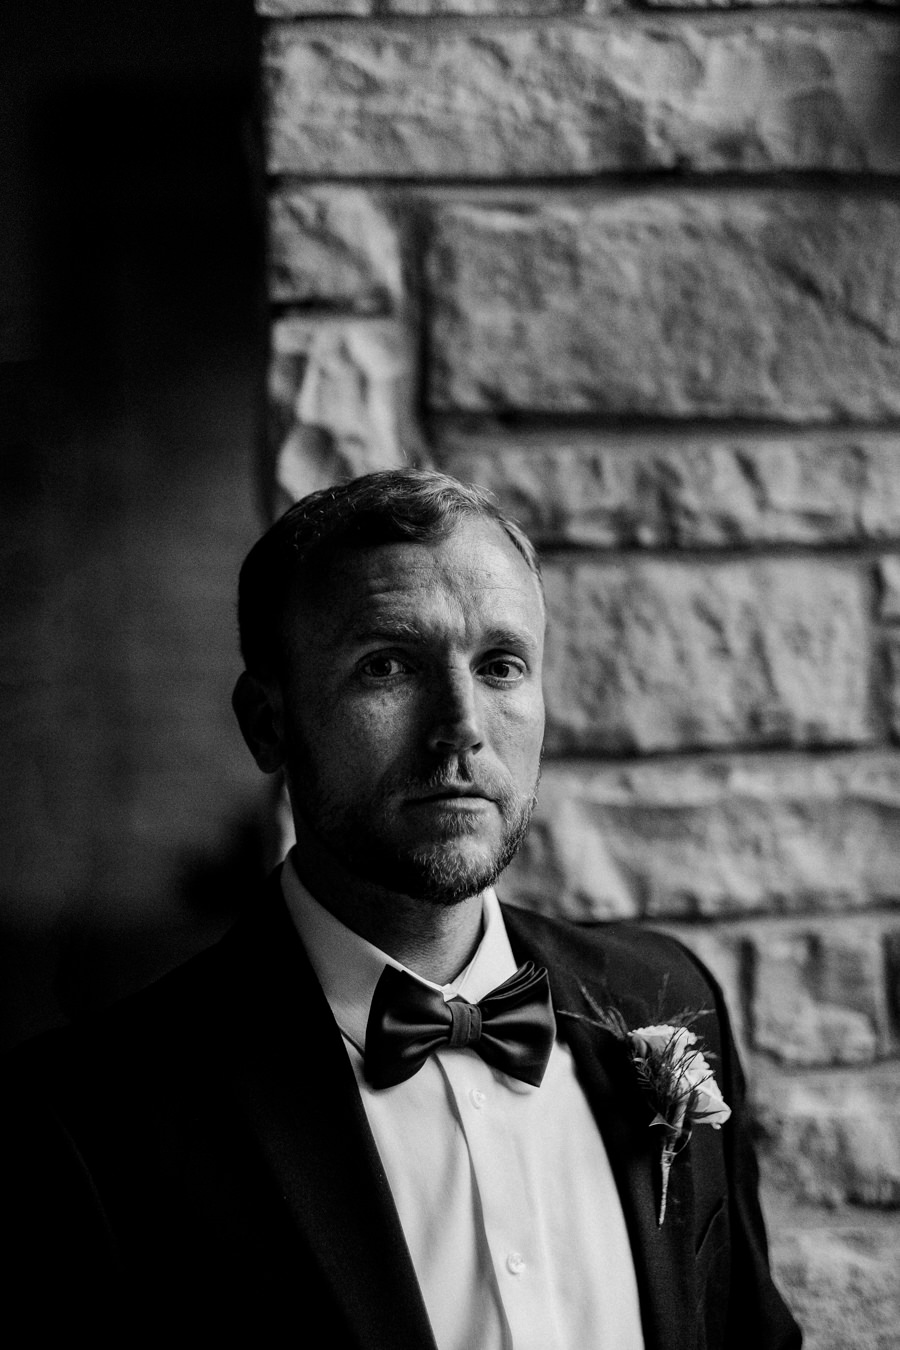 Black and white portrait of groom